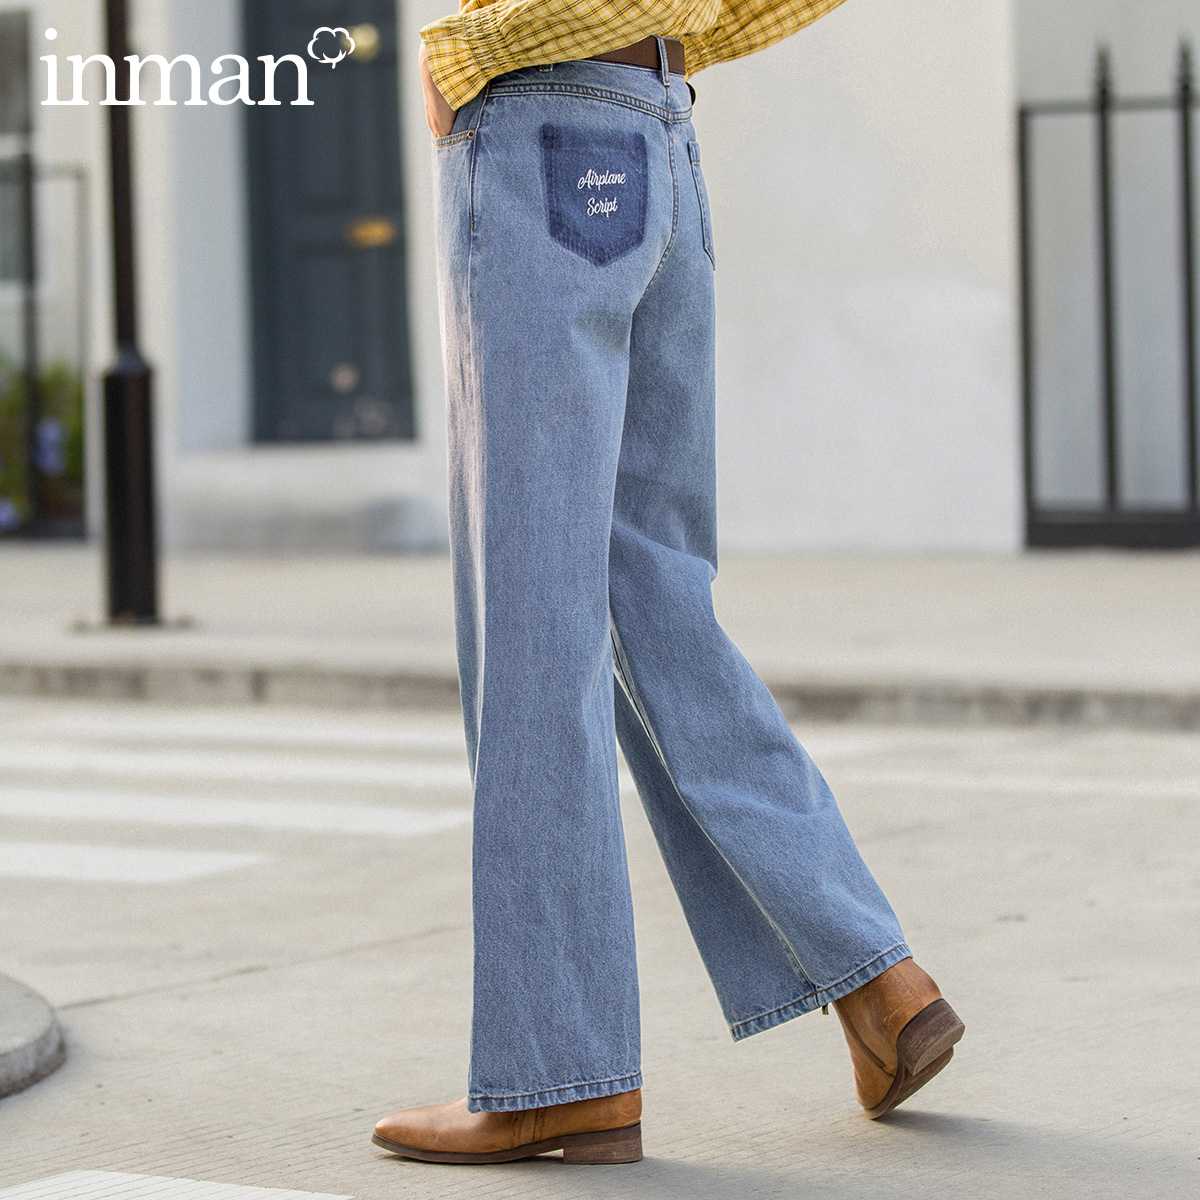 INMAN 2020 Spring New Arrival Literary Retro Pure Cutton Pocket Embroiedered Loose Slimmed Loose Pant